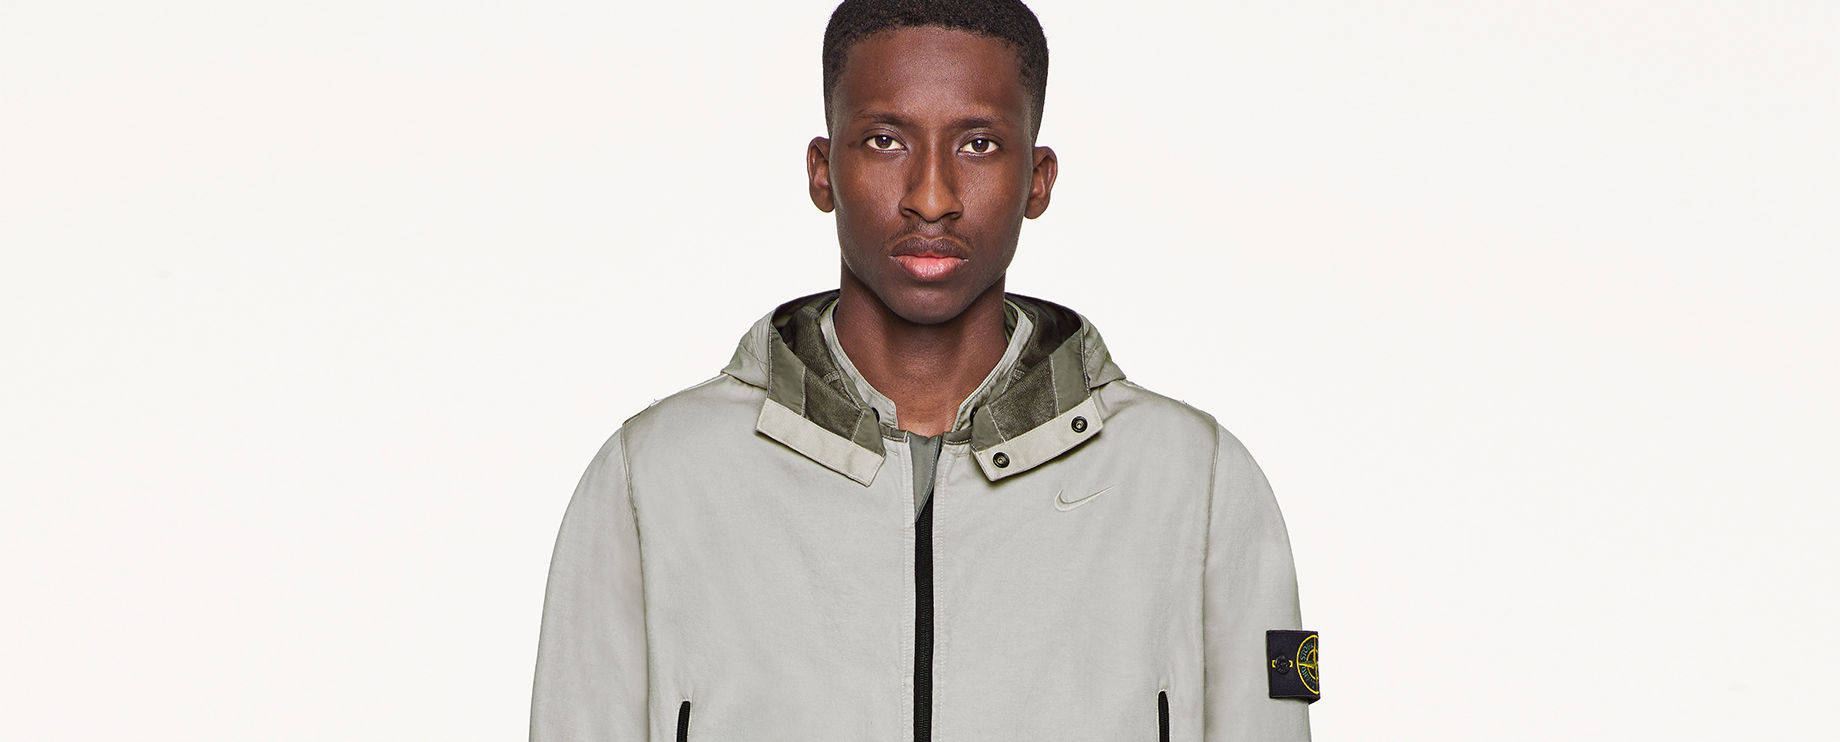 Model wearing gray, performance jacket with hood and Stone Island badge on left arm.